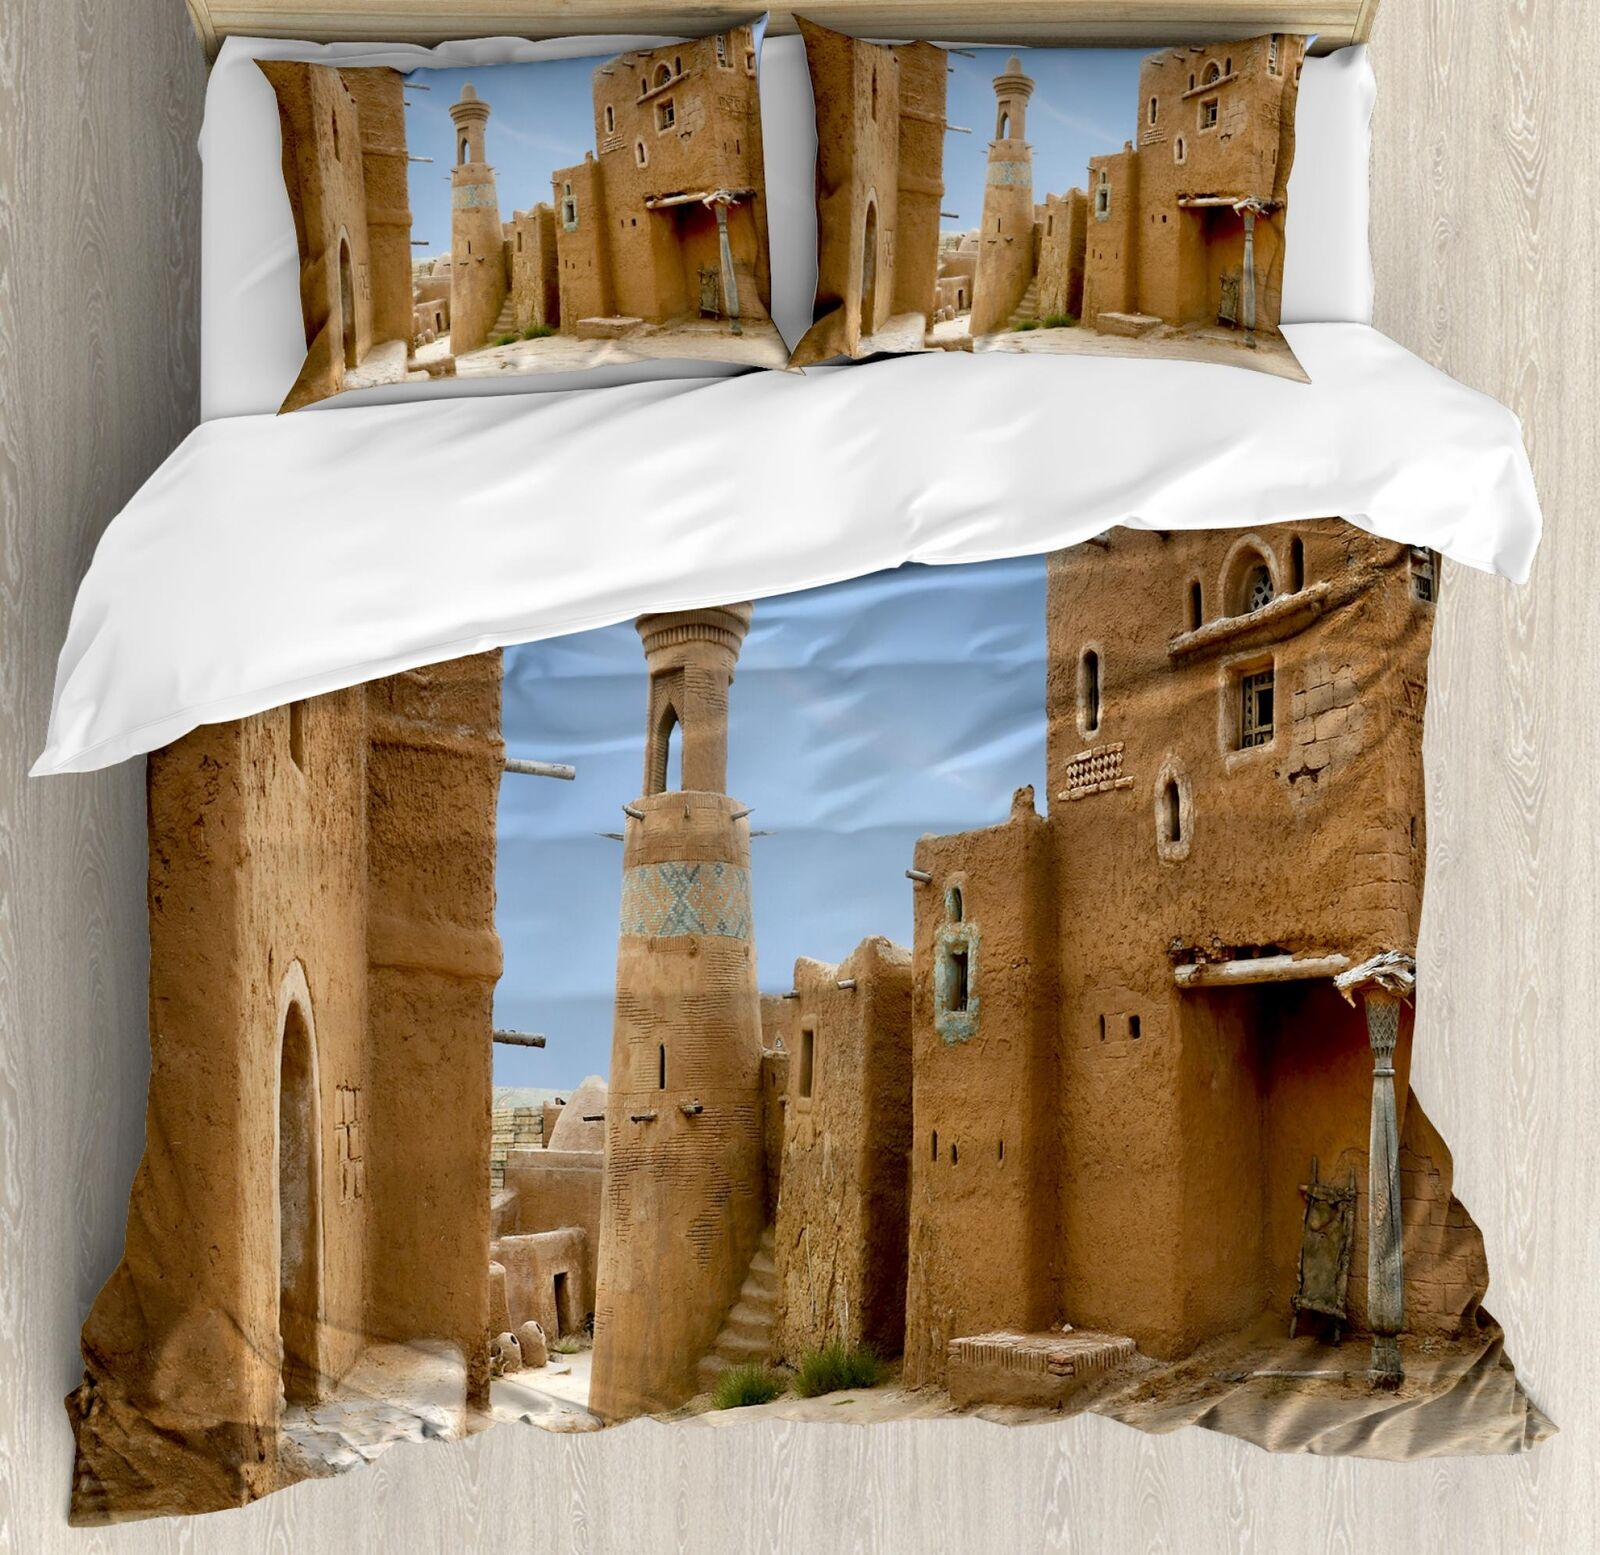 Desert Duvet Cover Set Twin Queen King Dimensiones with Pillow Shams Ambesonne